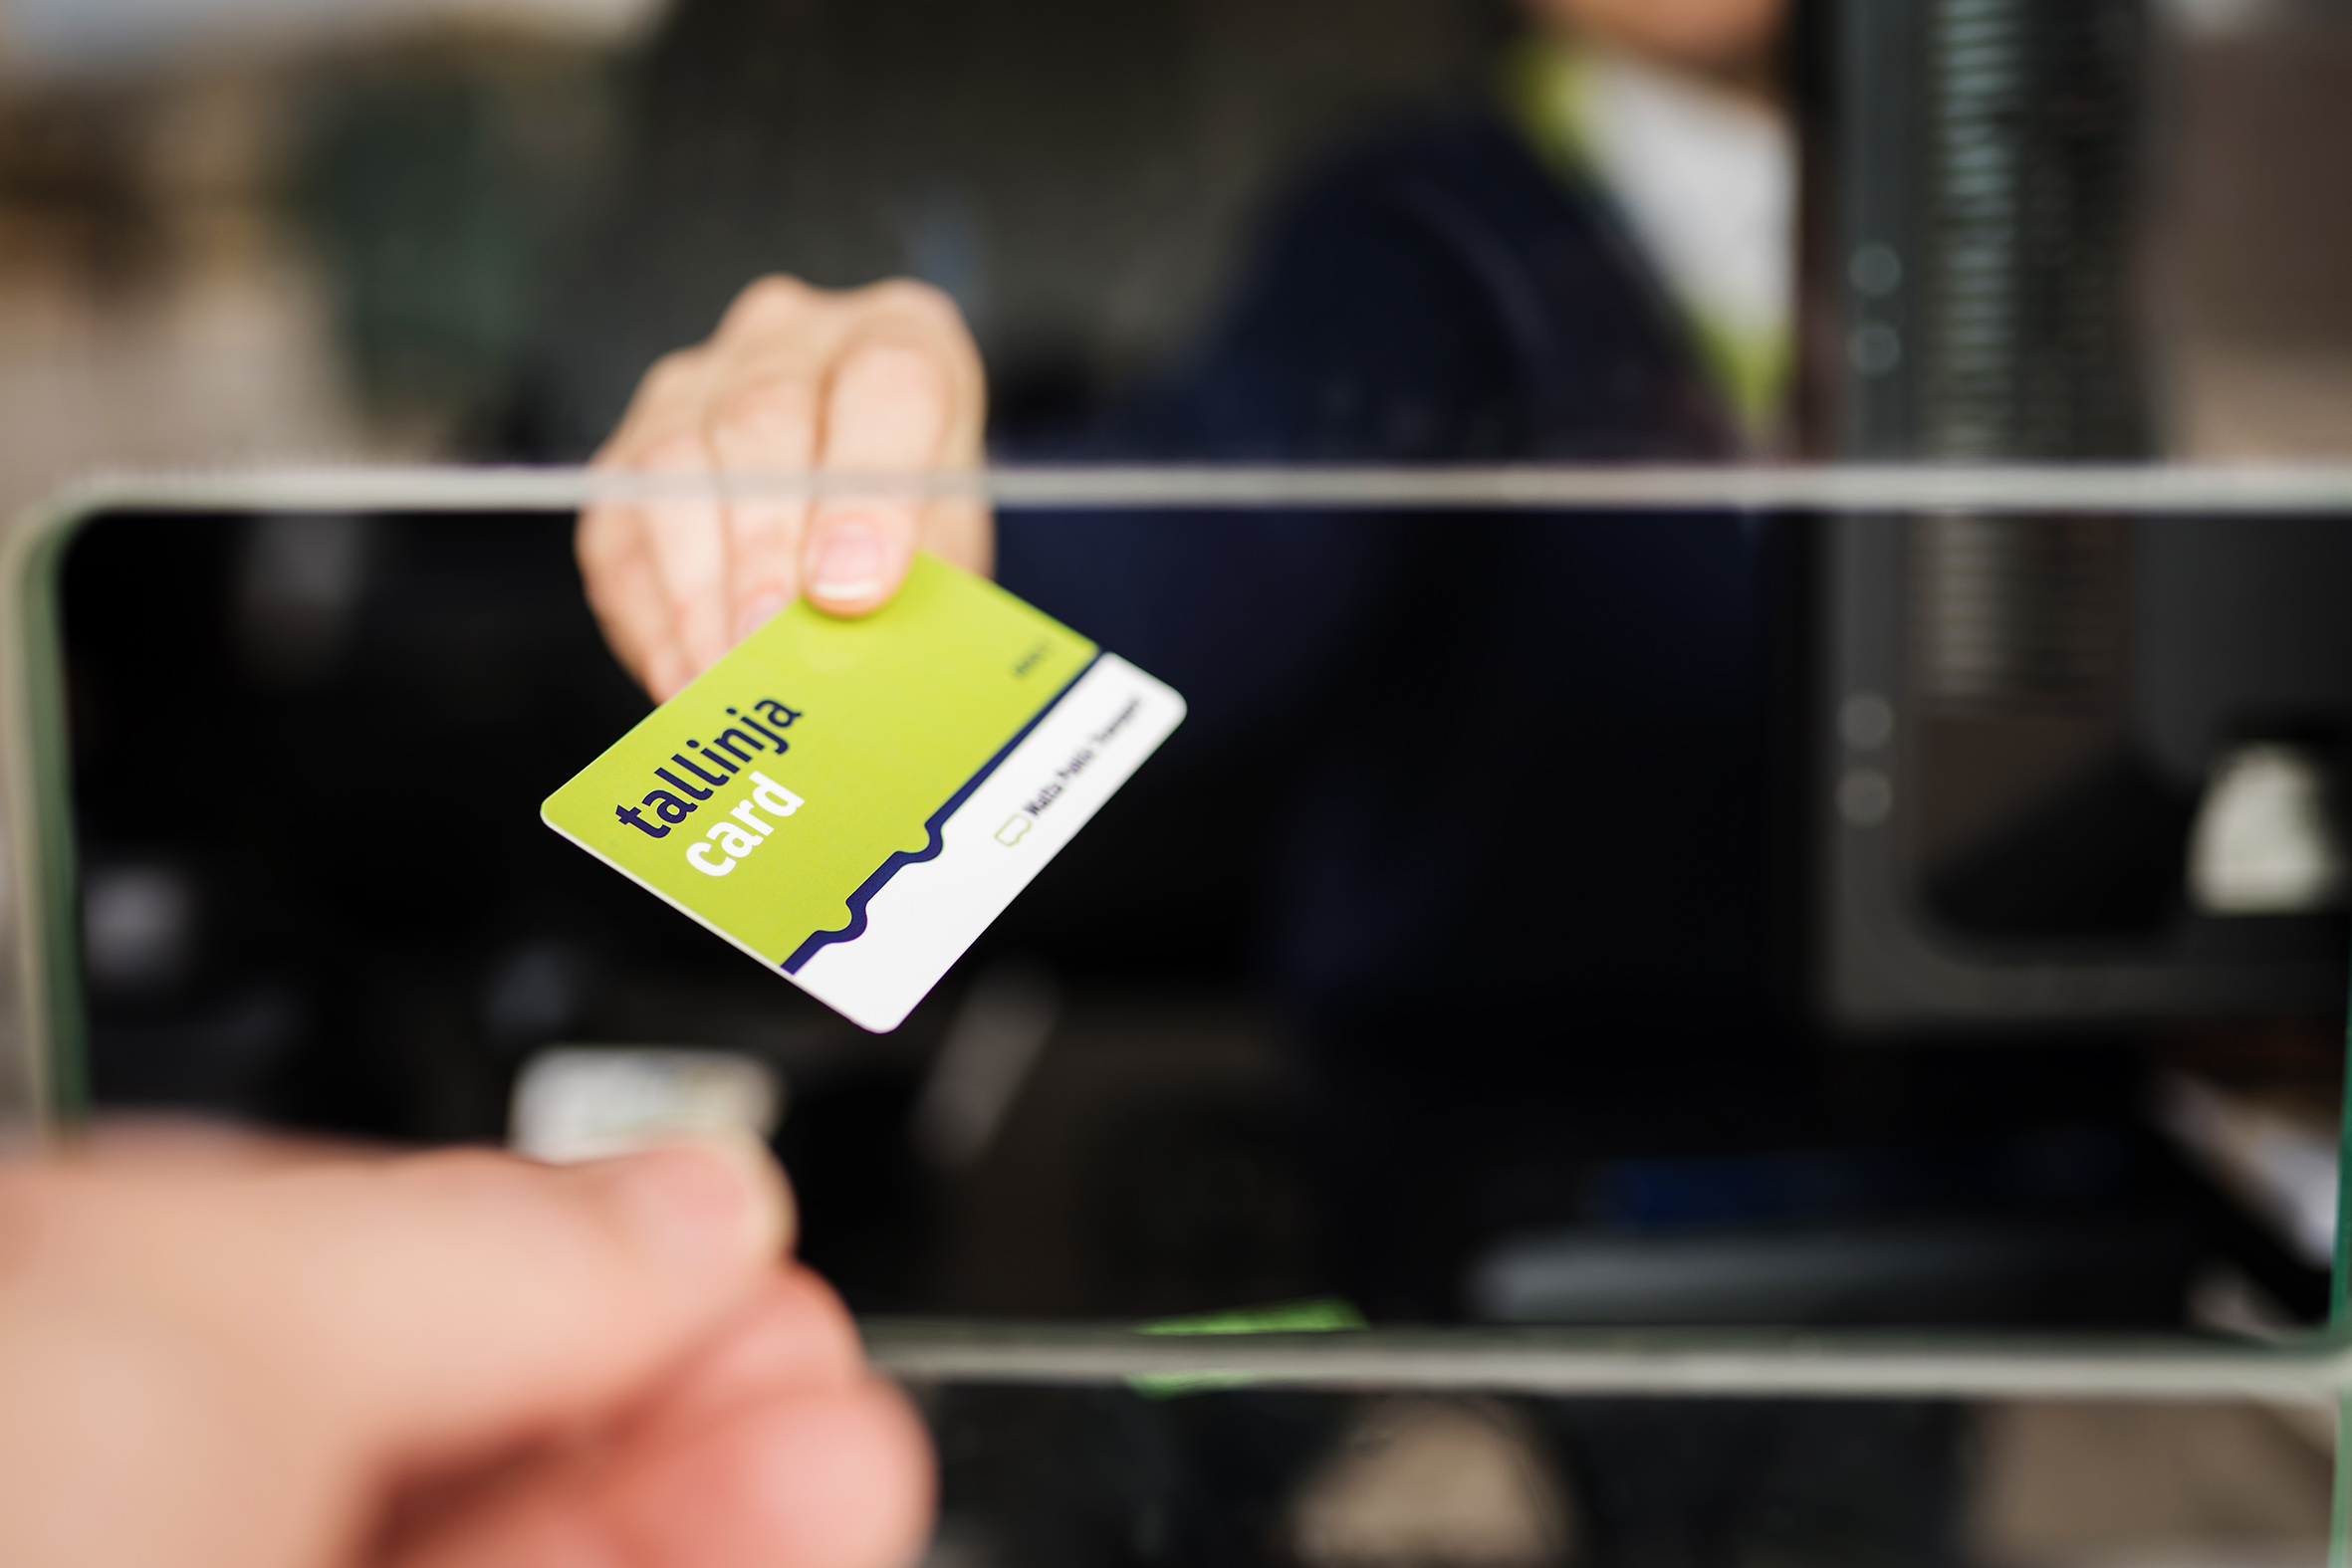 Register for your new Tallinja Card and get €10 free credit - Newsbook